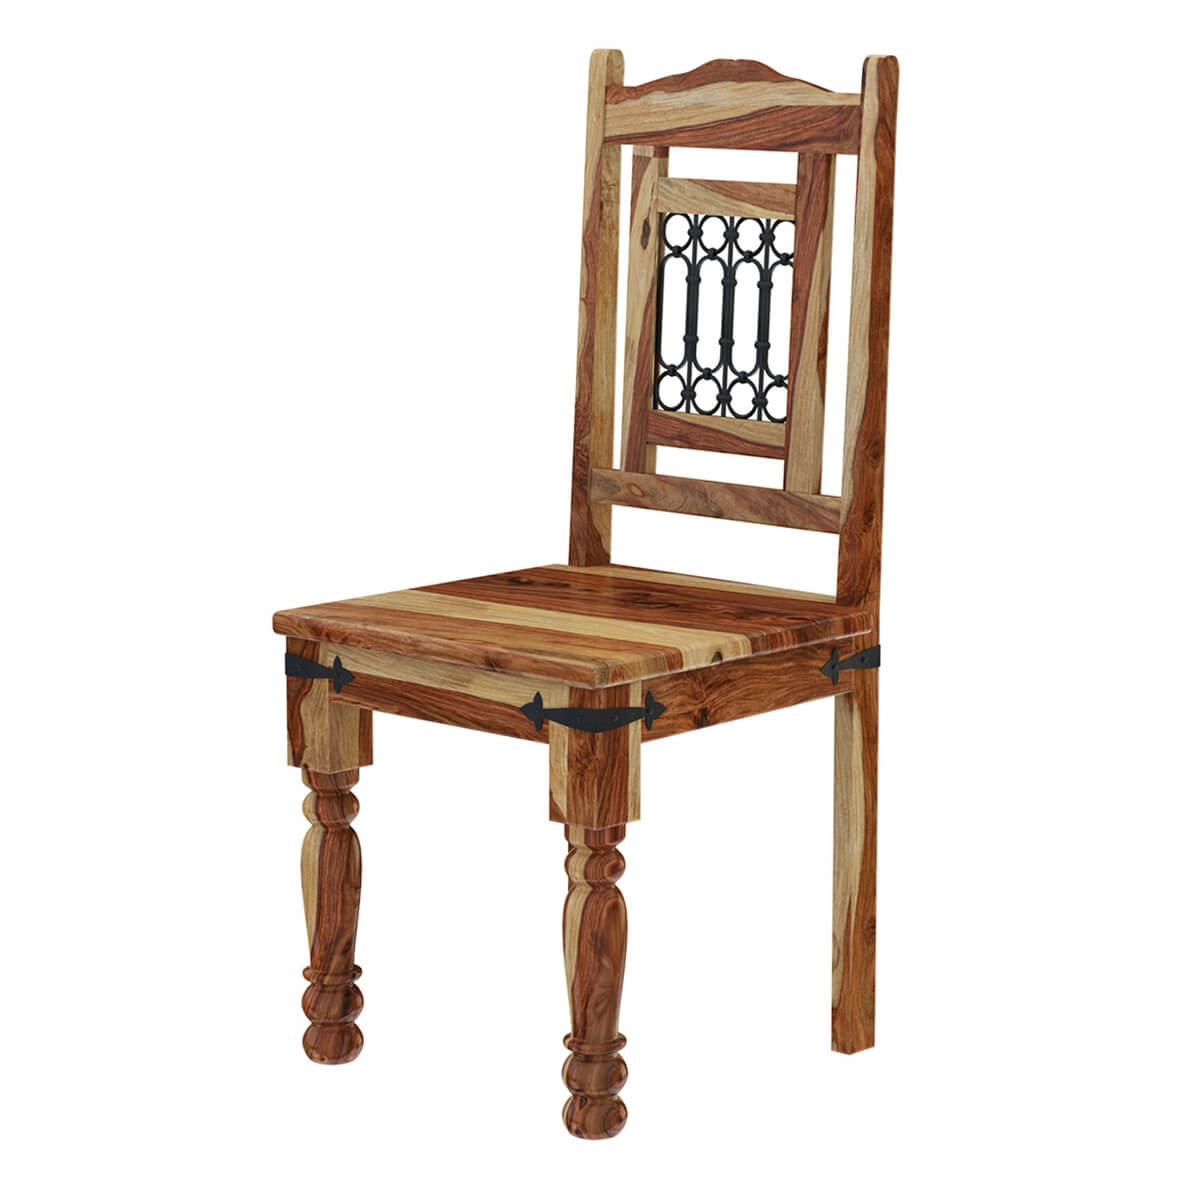 Wood Dining Chair Peoria Solid Wood And Wrought Iron Rustic Kitchen Dining Chair